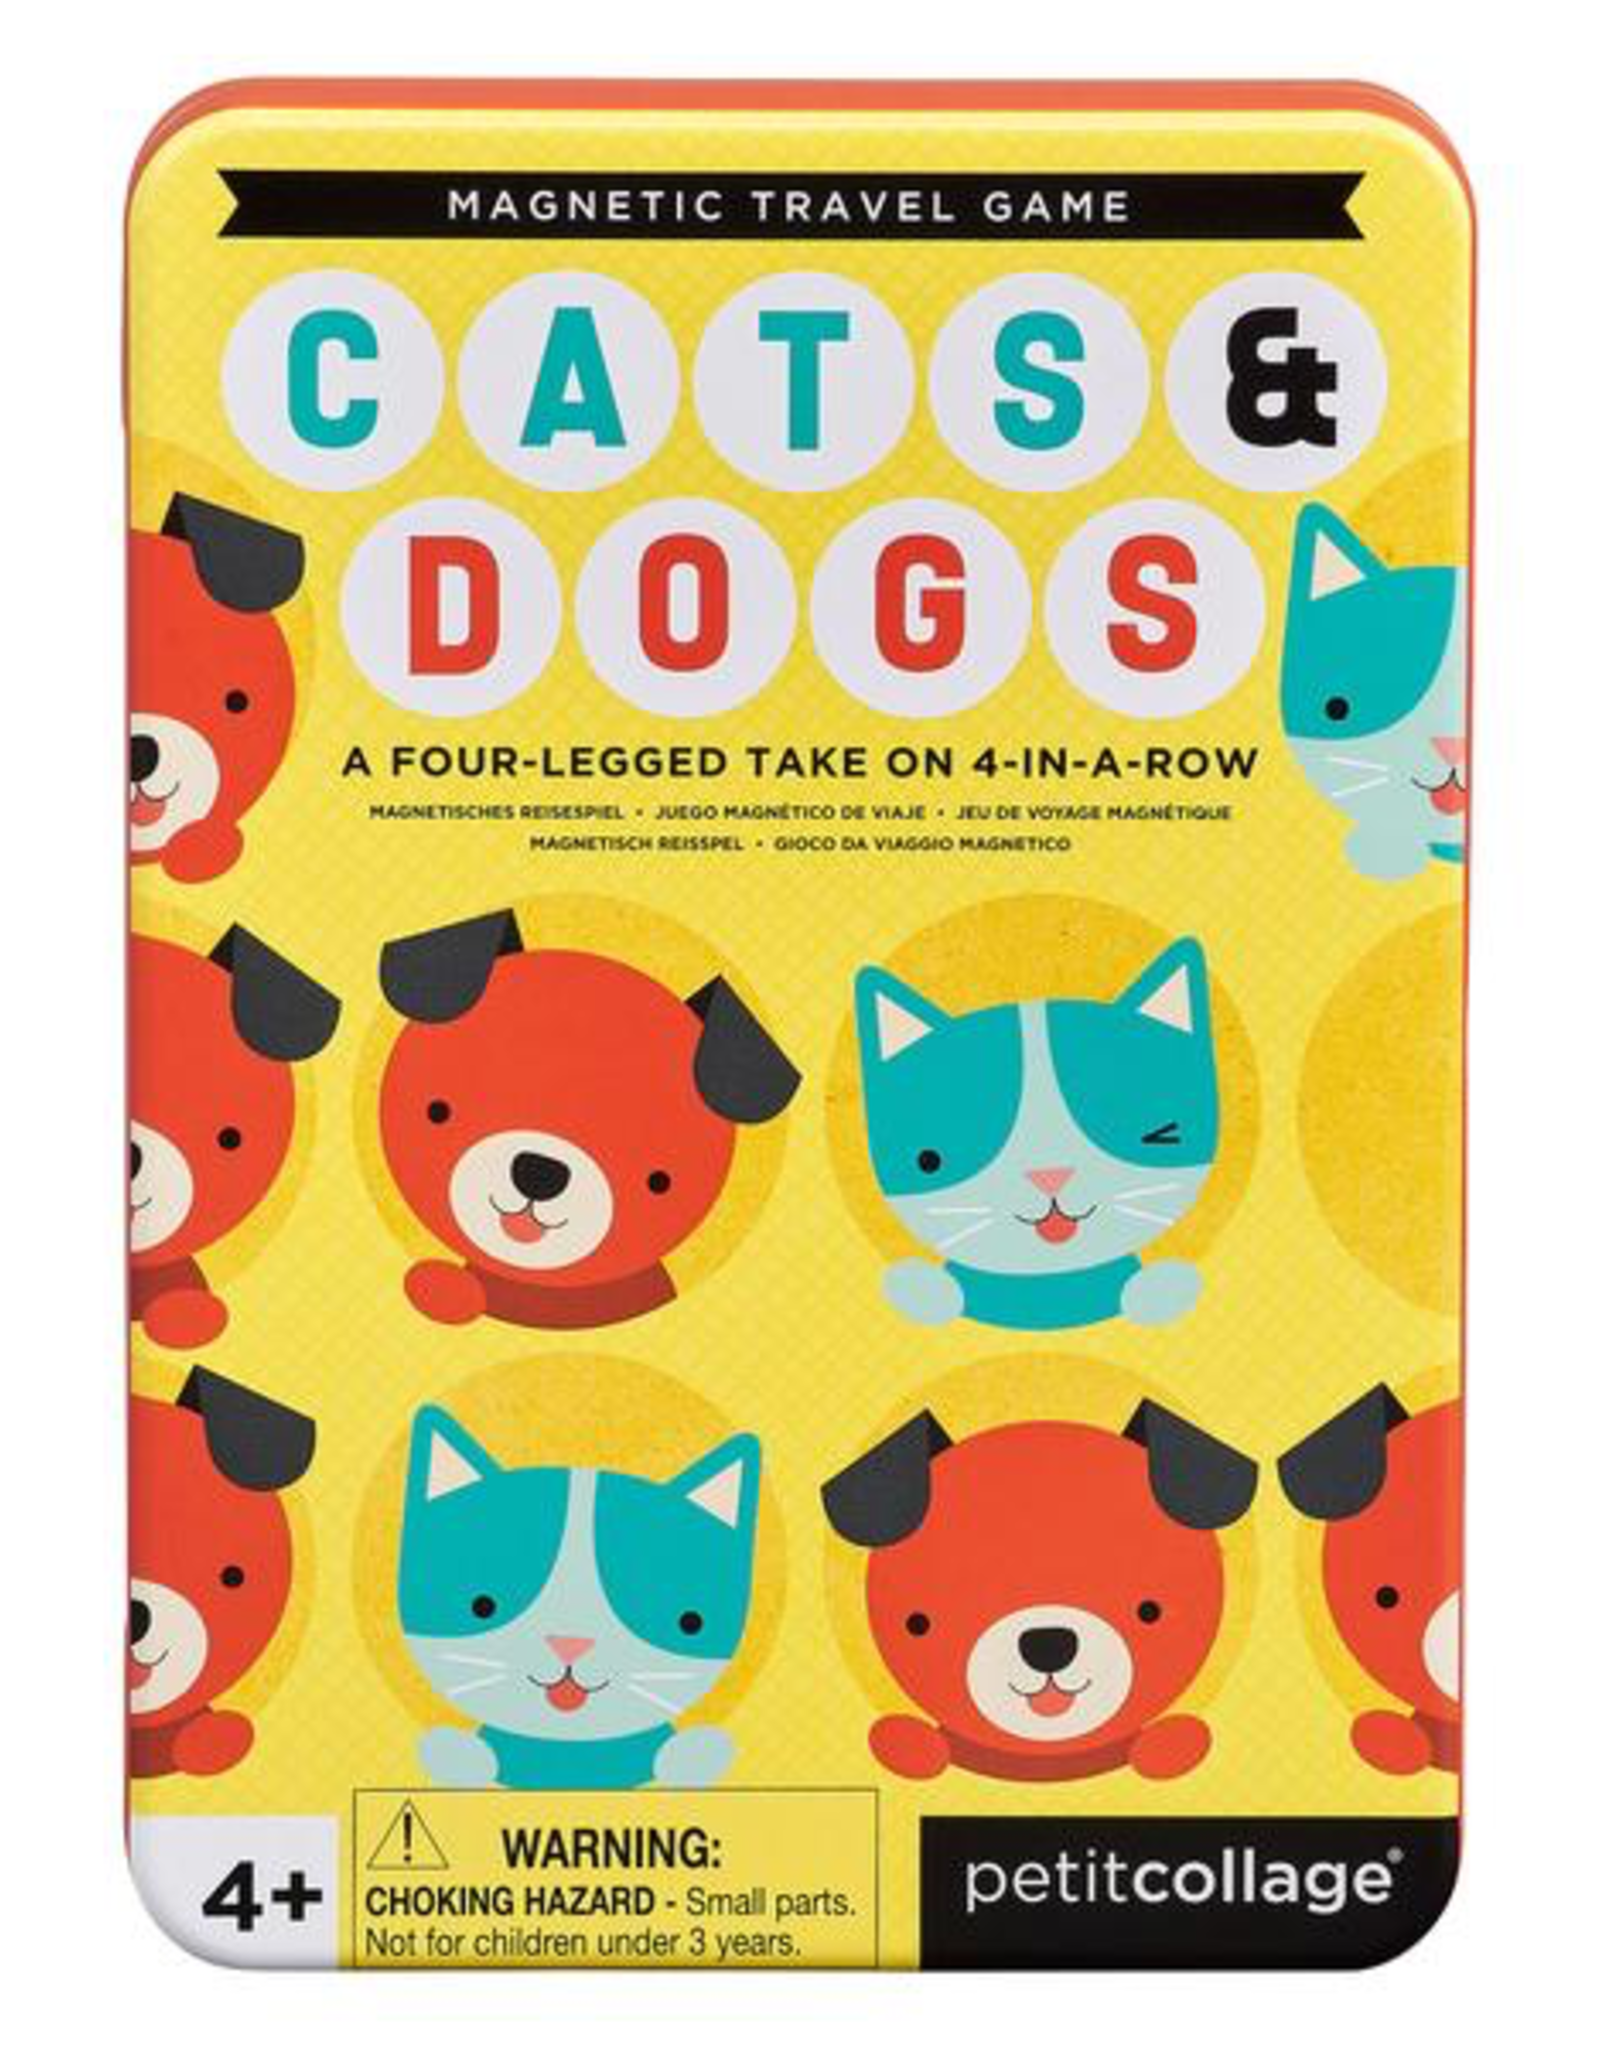 Cats & Dogs Game Tin